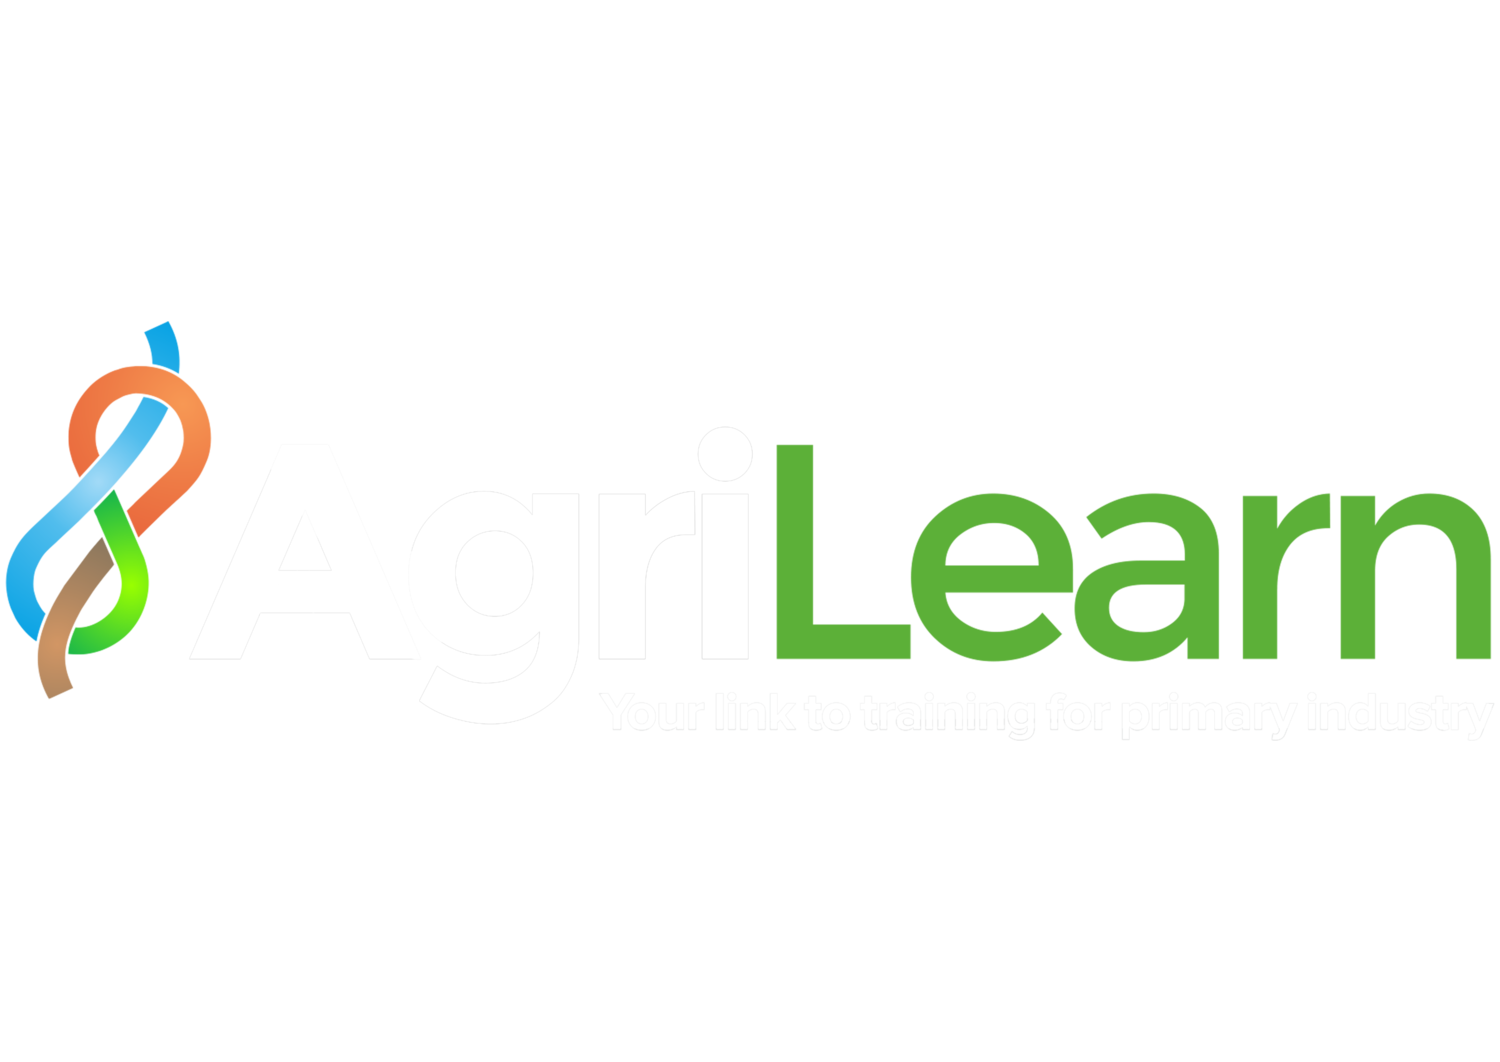 Agrilearn